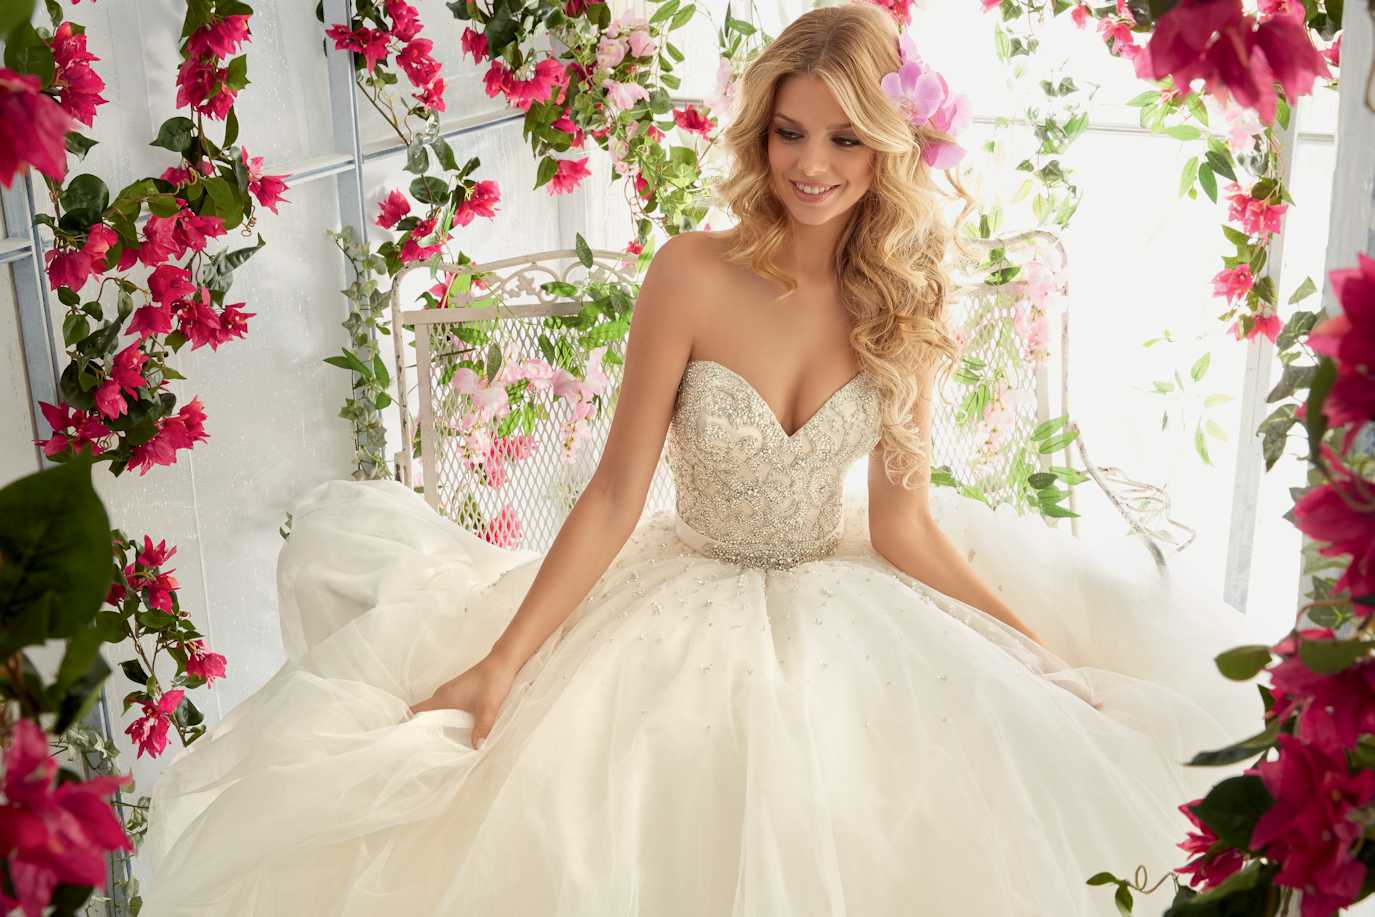 Wedding Dresses & Gowns | Bridal Shops | Johannesburg, Gauteng